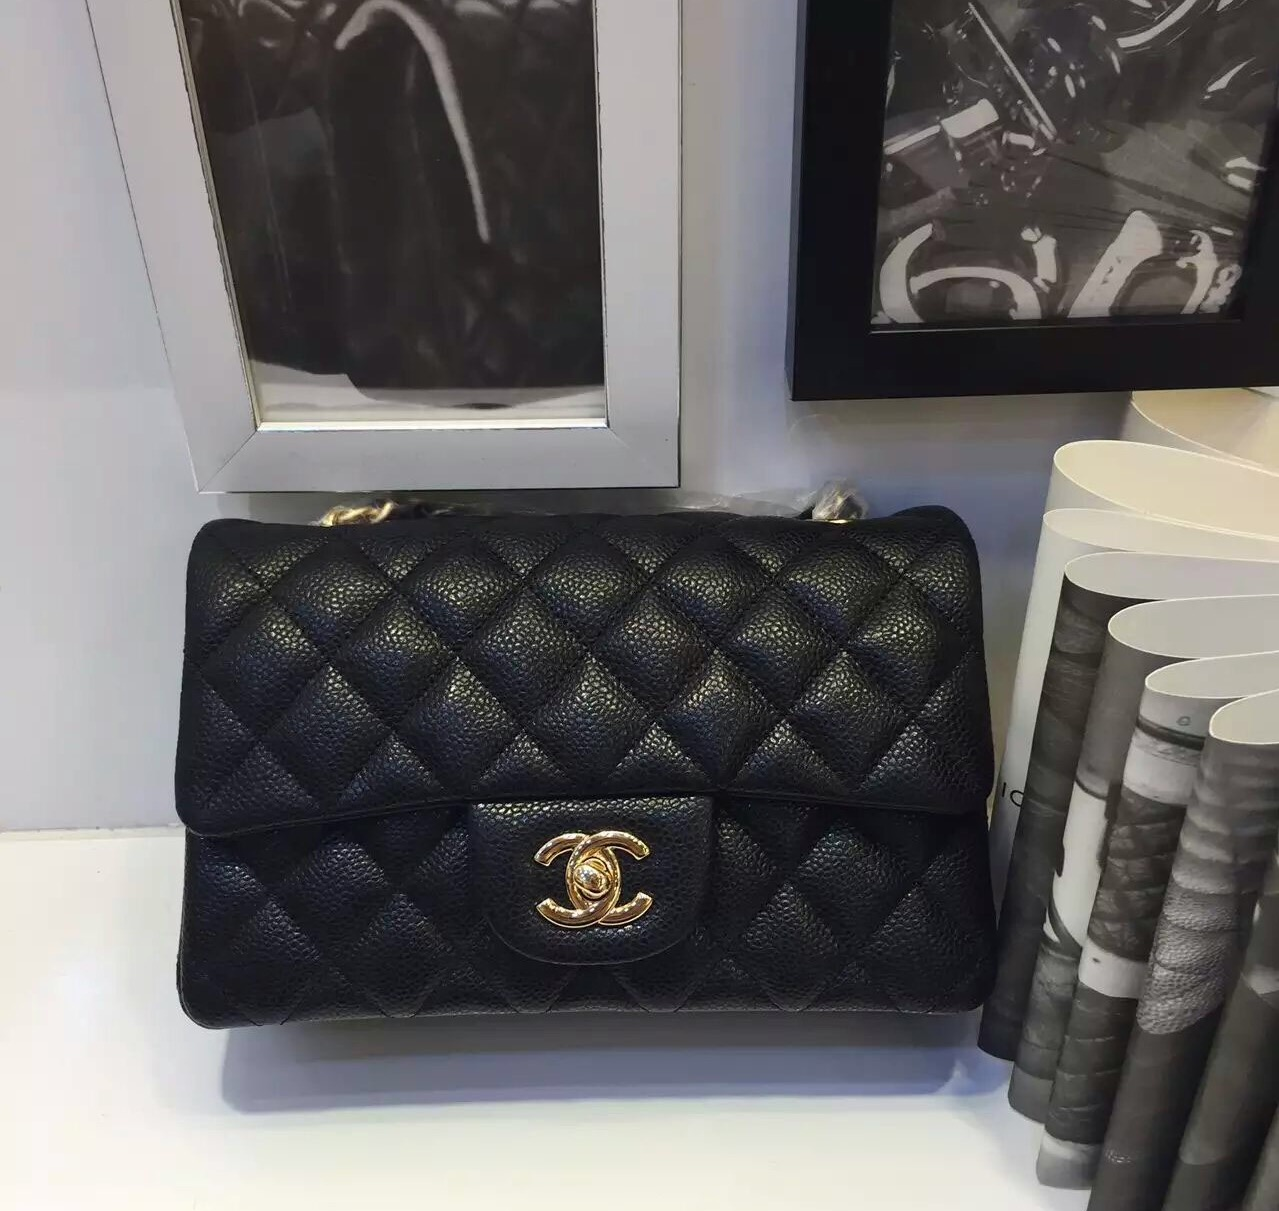 21babc780bfd CHANEL small black leather flap bag · Lux Shoe Addict · Online Store ...